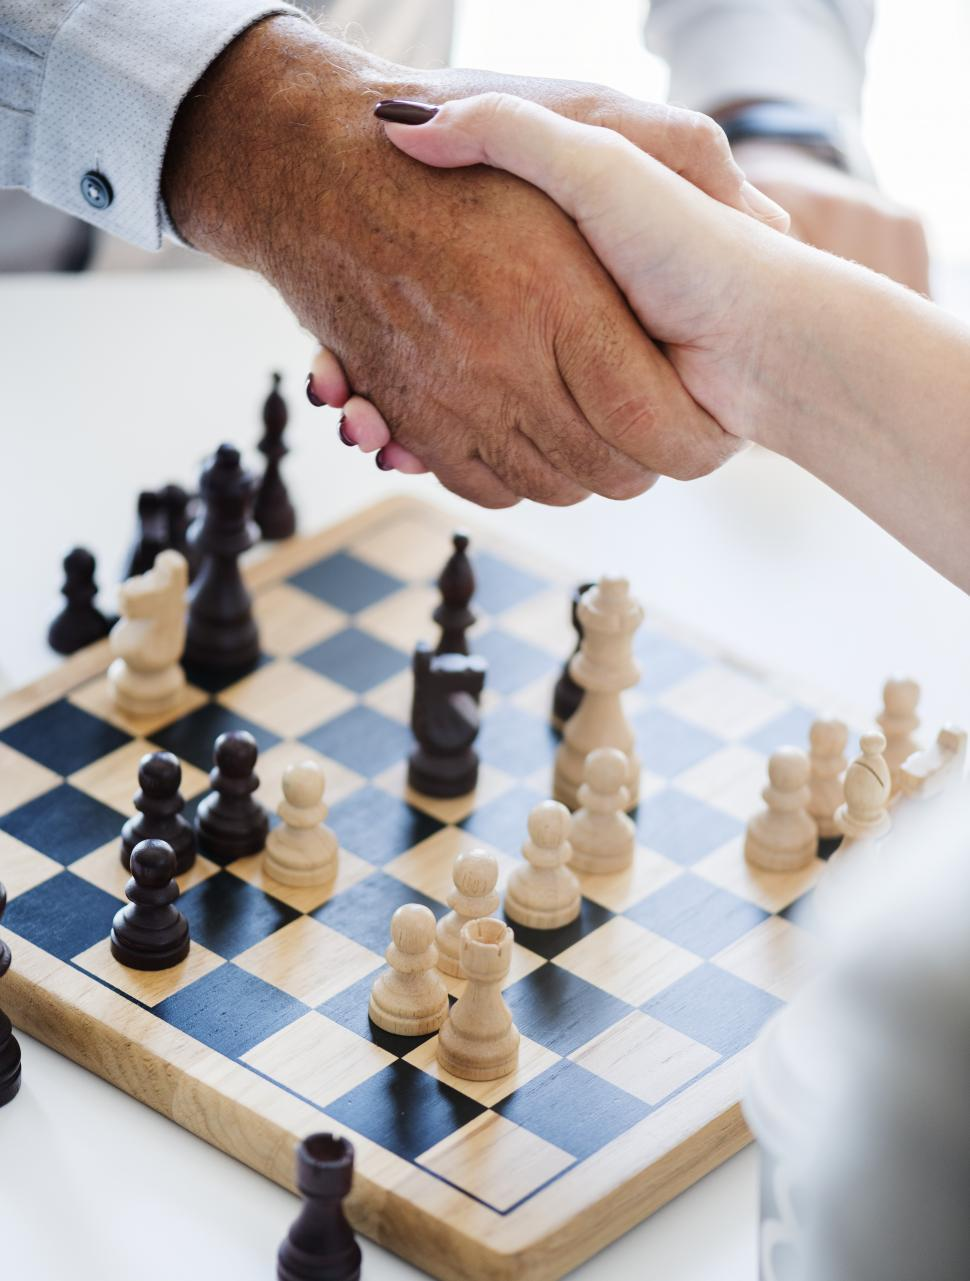 Download Free Stock HD Photo of Close up of a handshake over a chessboard after game Online